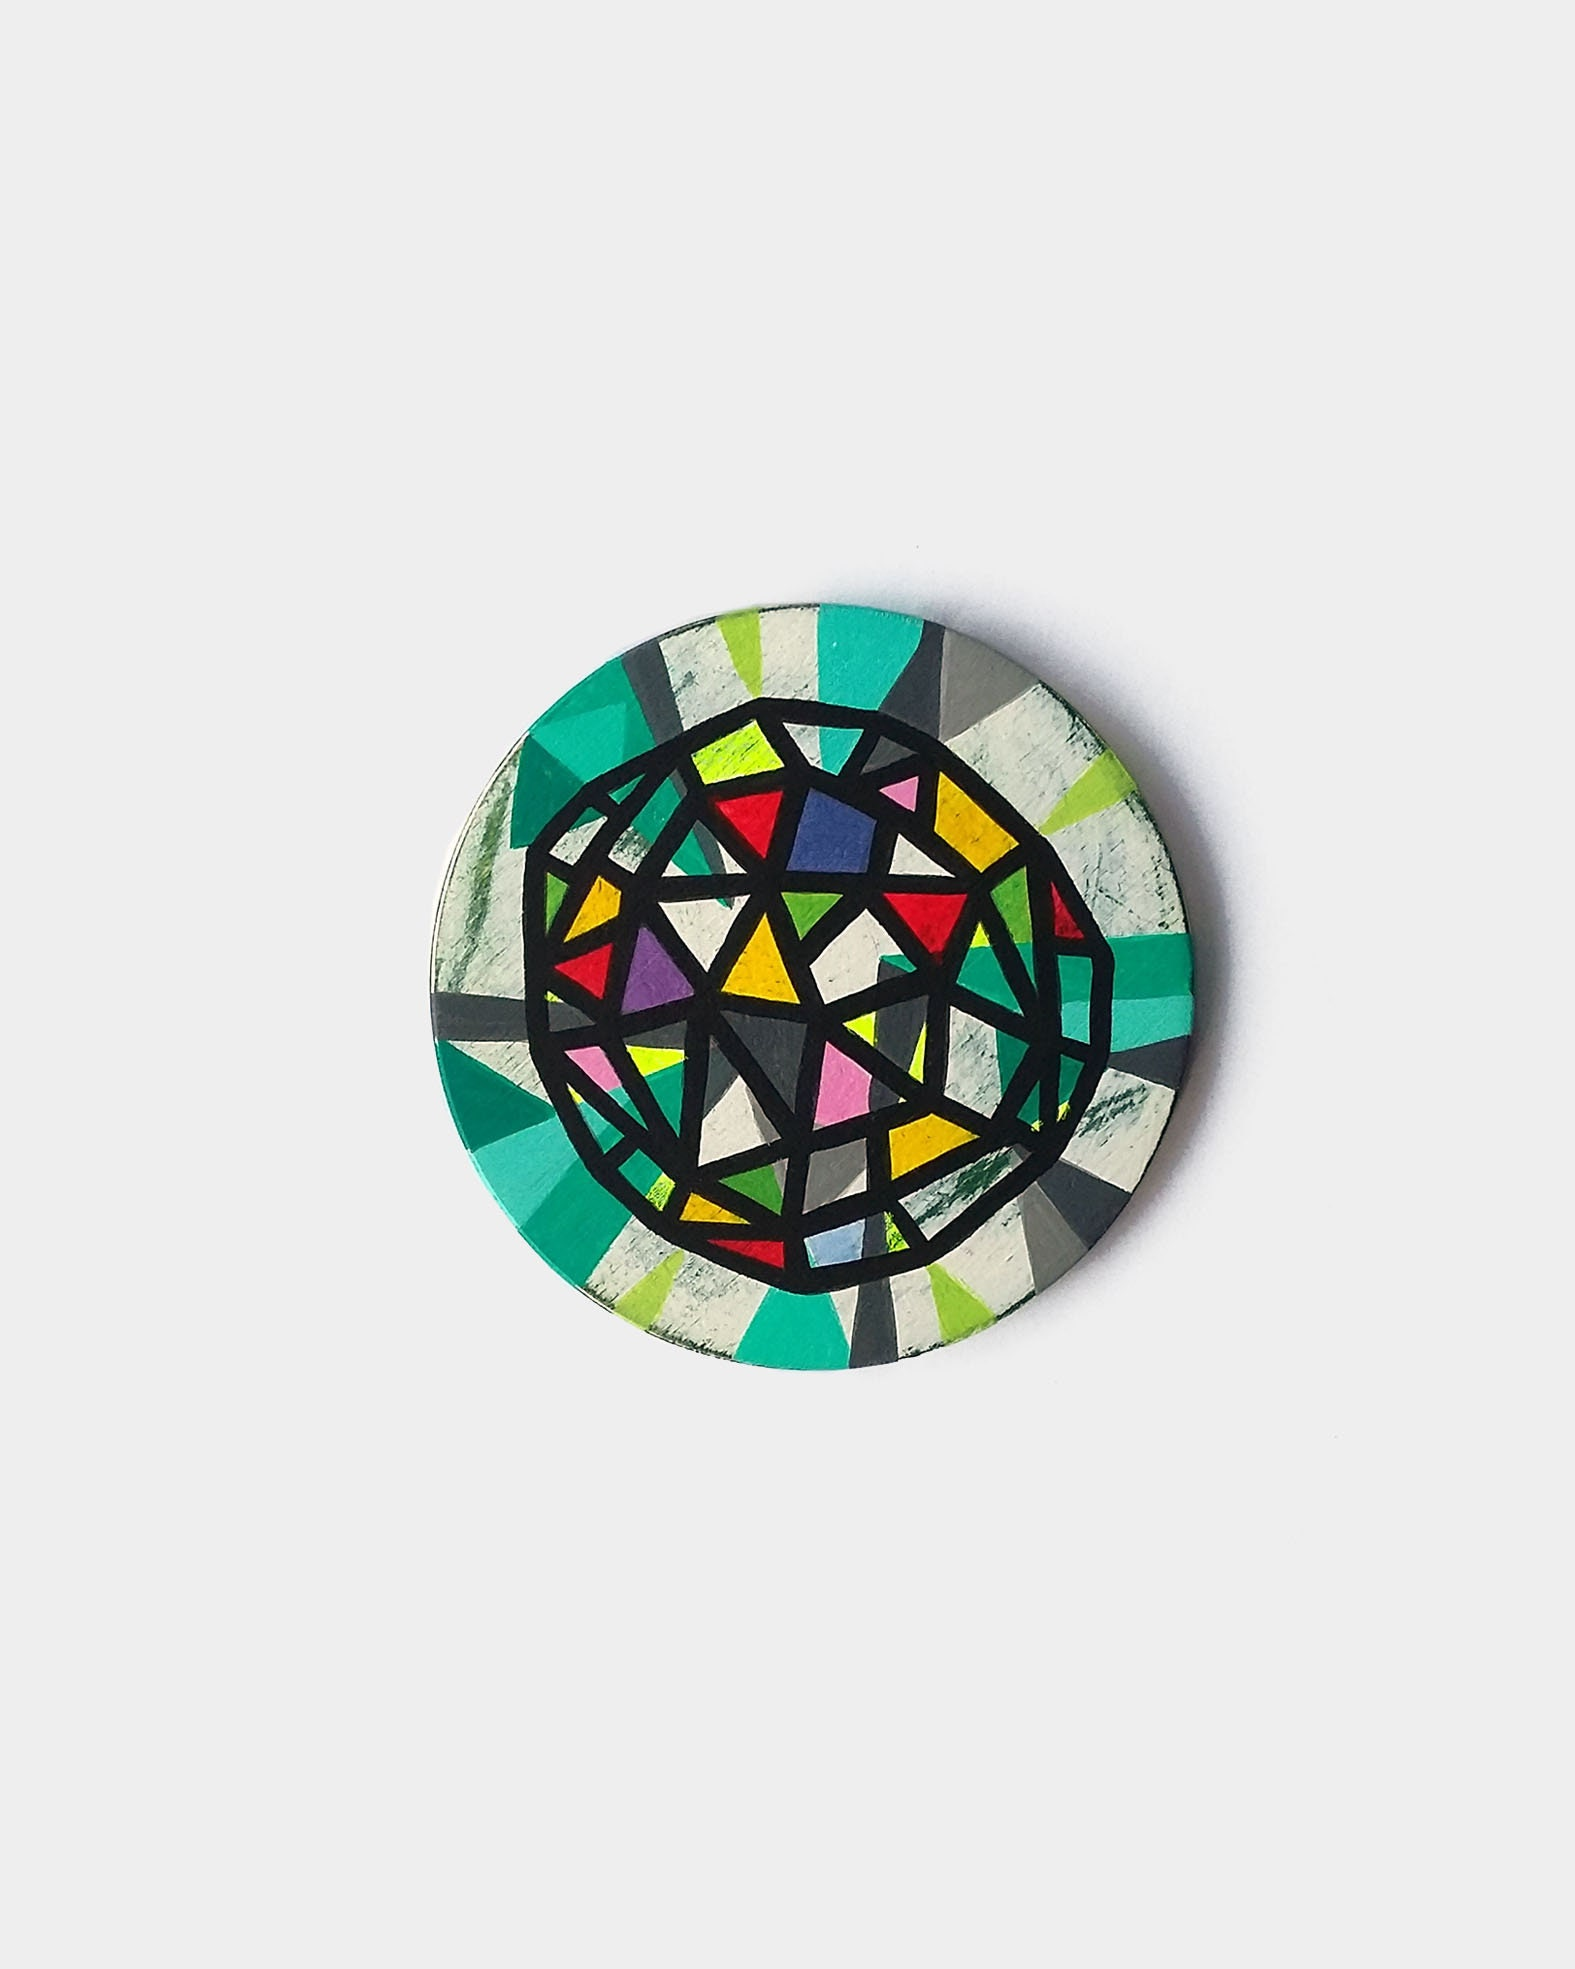 Net_003, abstract geometric miniature artwork - product images  of